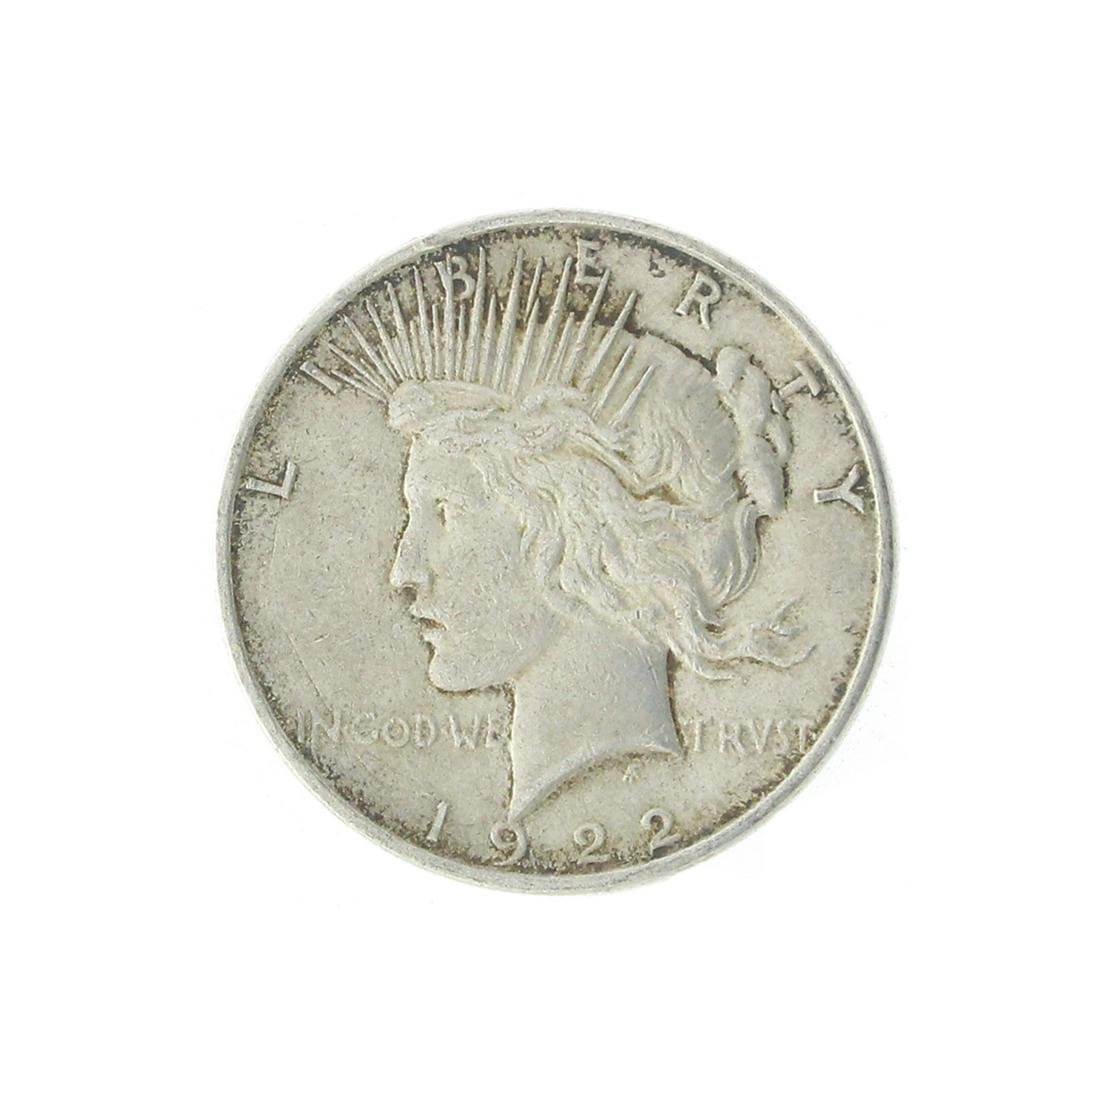 Extremely Rare 1922 U.S. Peace Type Silver Dollar Coin